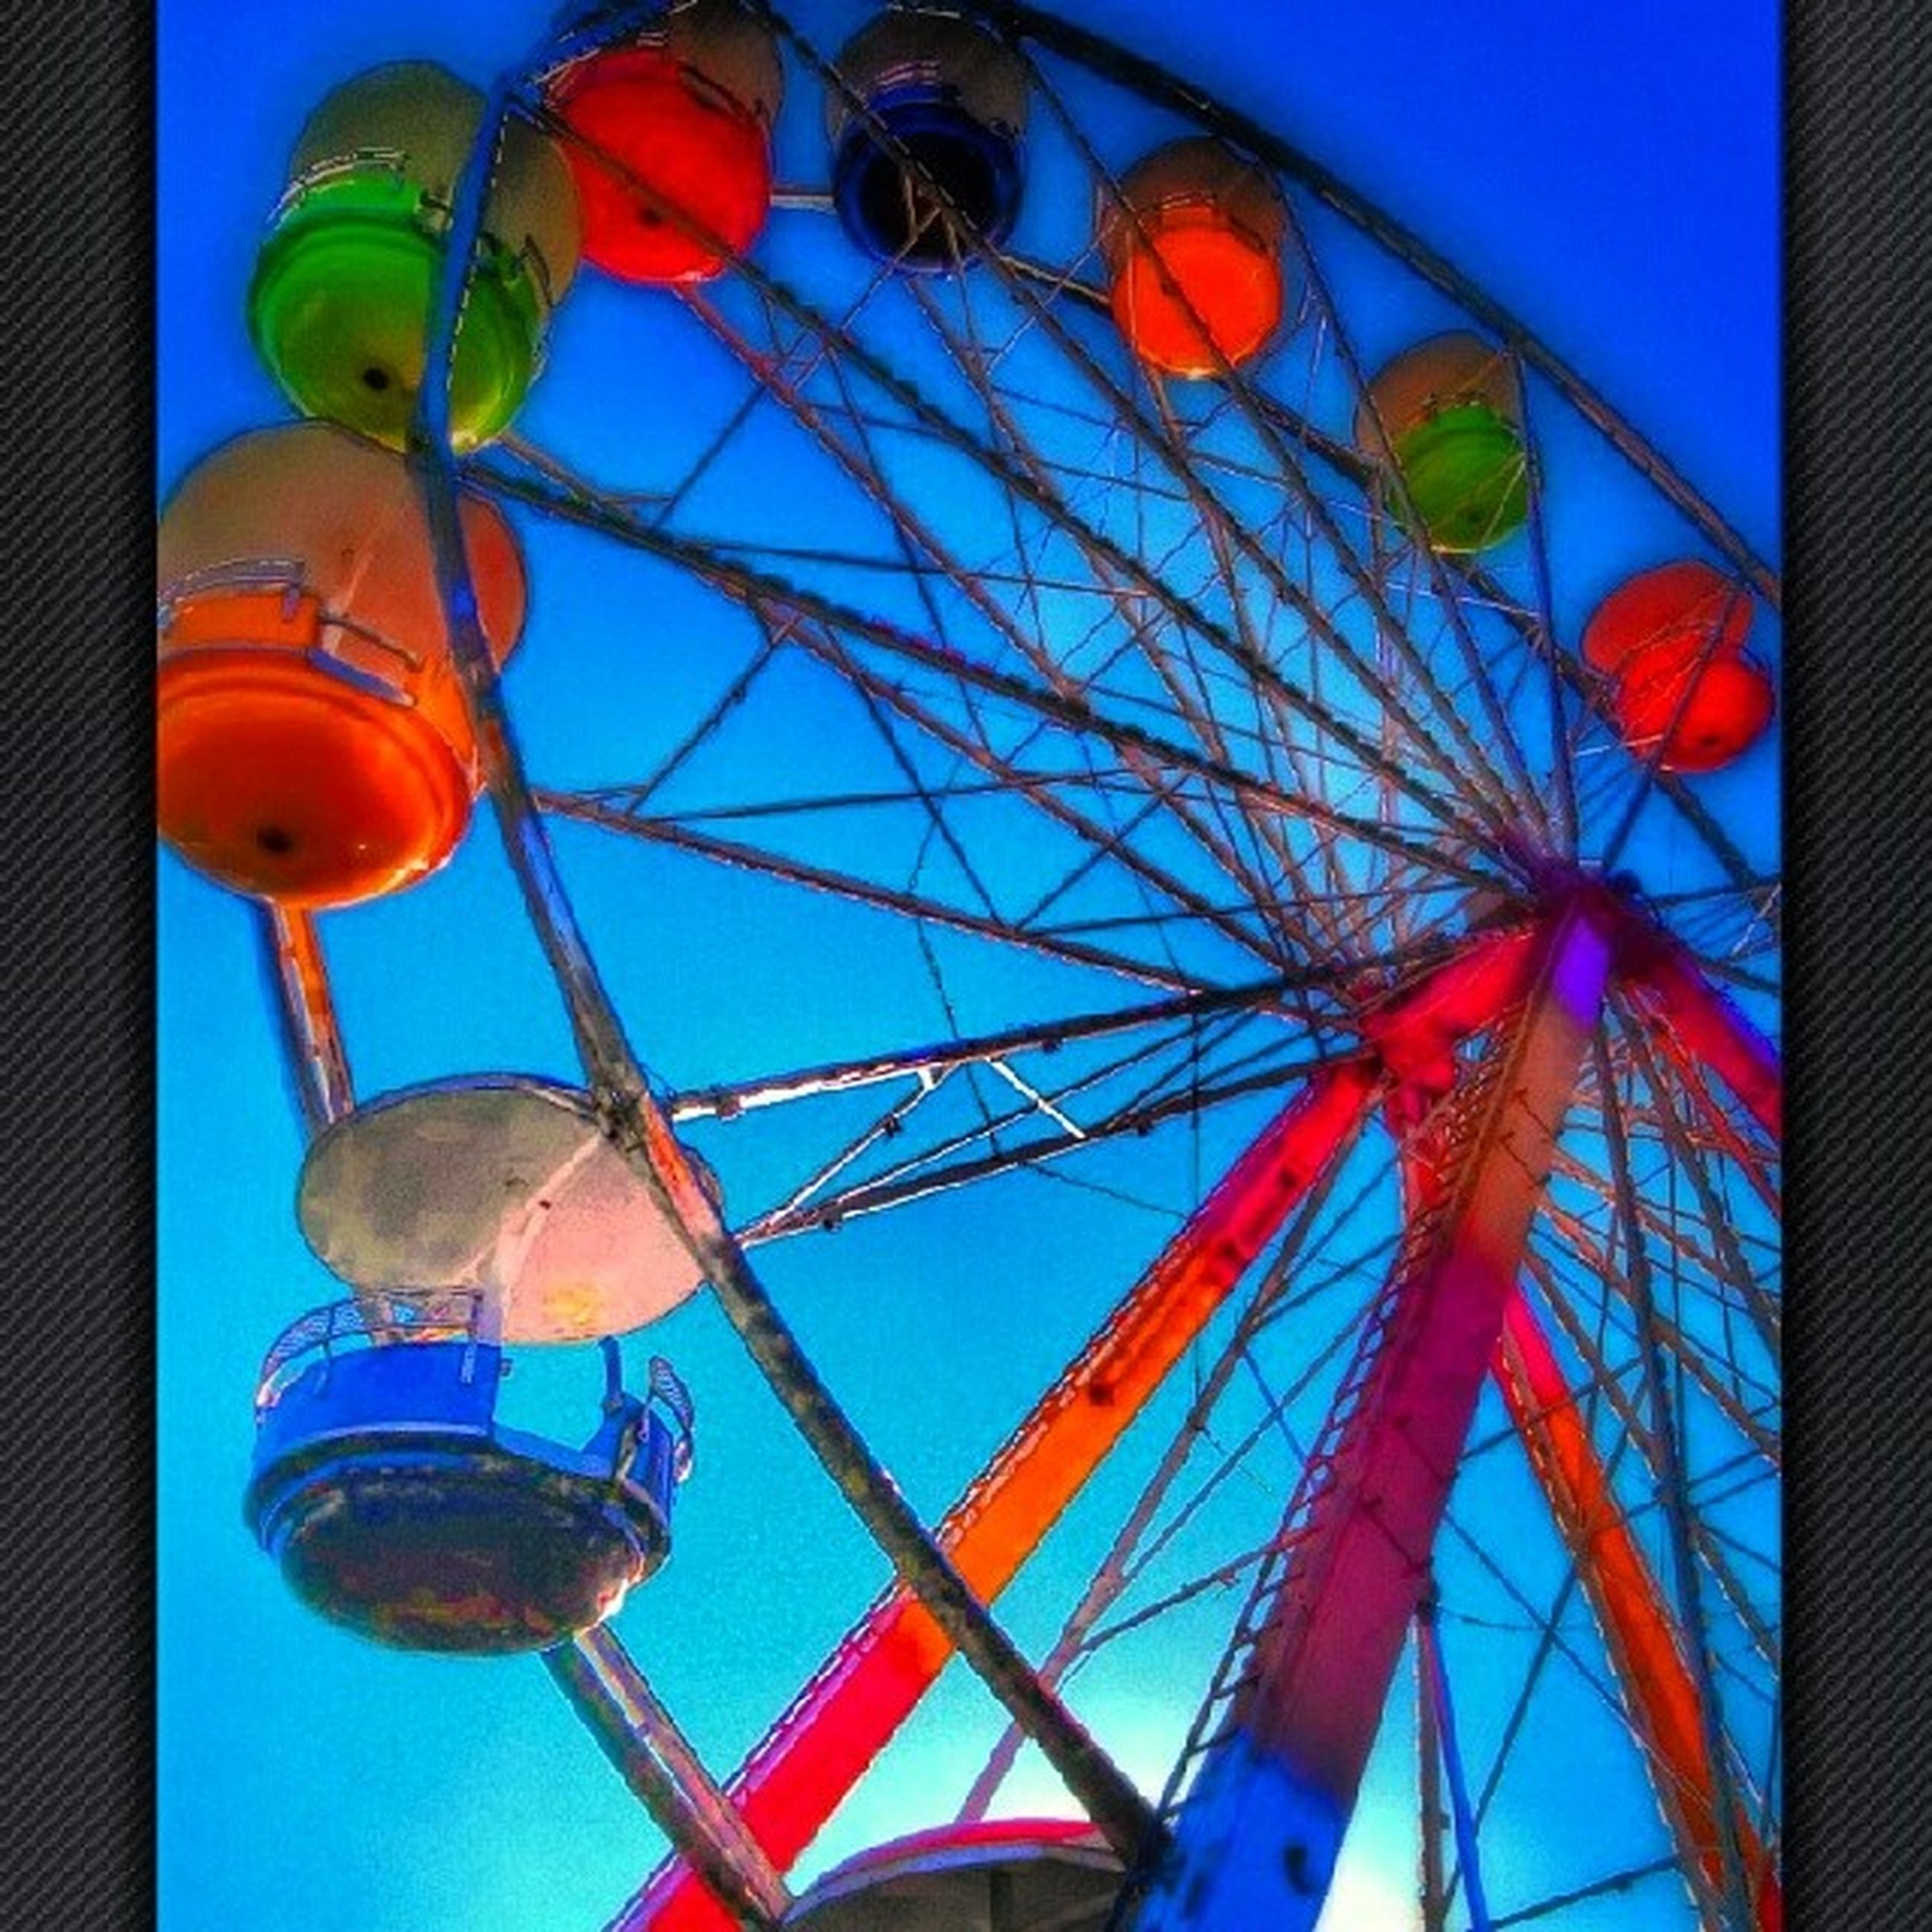 low angle view, amusement park, multi colored, blue, amusement park ride, lighting equipment, ferris wheel, decoration, hanging, metal, arts culture and entertainment, illuminated, built structure, lantern, sky, architecture, no people, clear sky, auto post production filter, outdoors